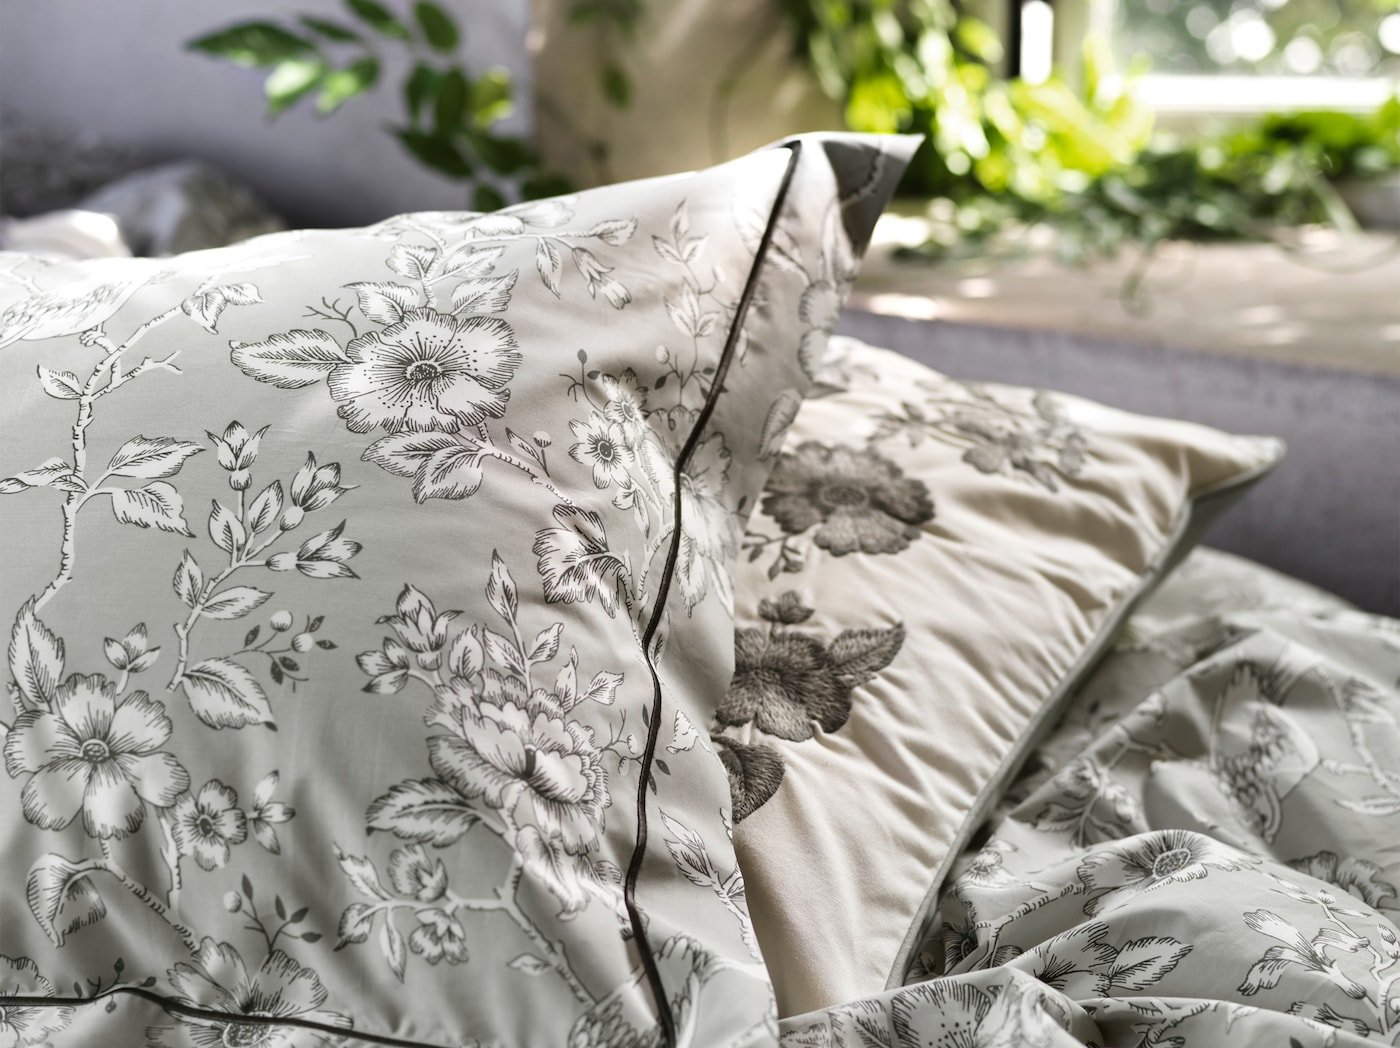 A close-up of PRAKTBRÄCKA quilt cover and pillowcase in gray featuring traditional floral patterns in black and white.